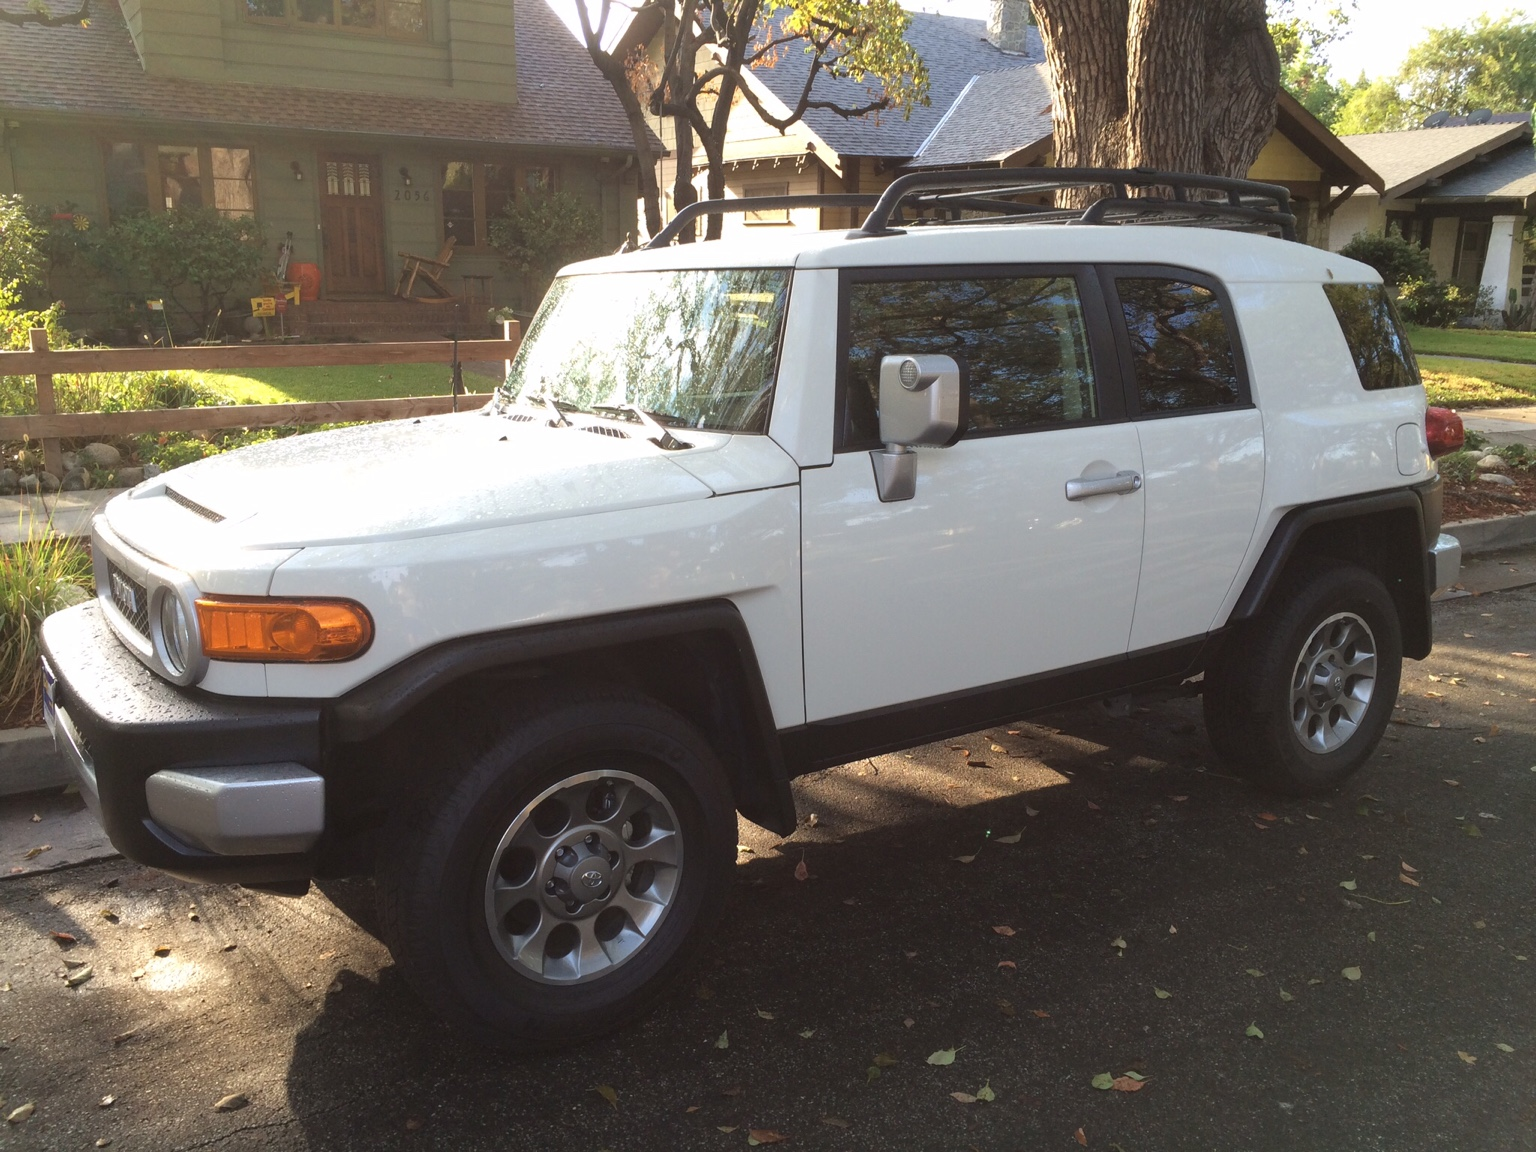 2013 Iceberg 4x4 AT stocker, bought used from Carmax with about 21K on the  odometer with the convenience package and the Rear diff locker.